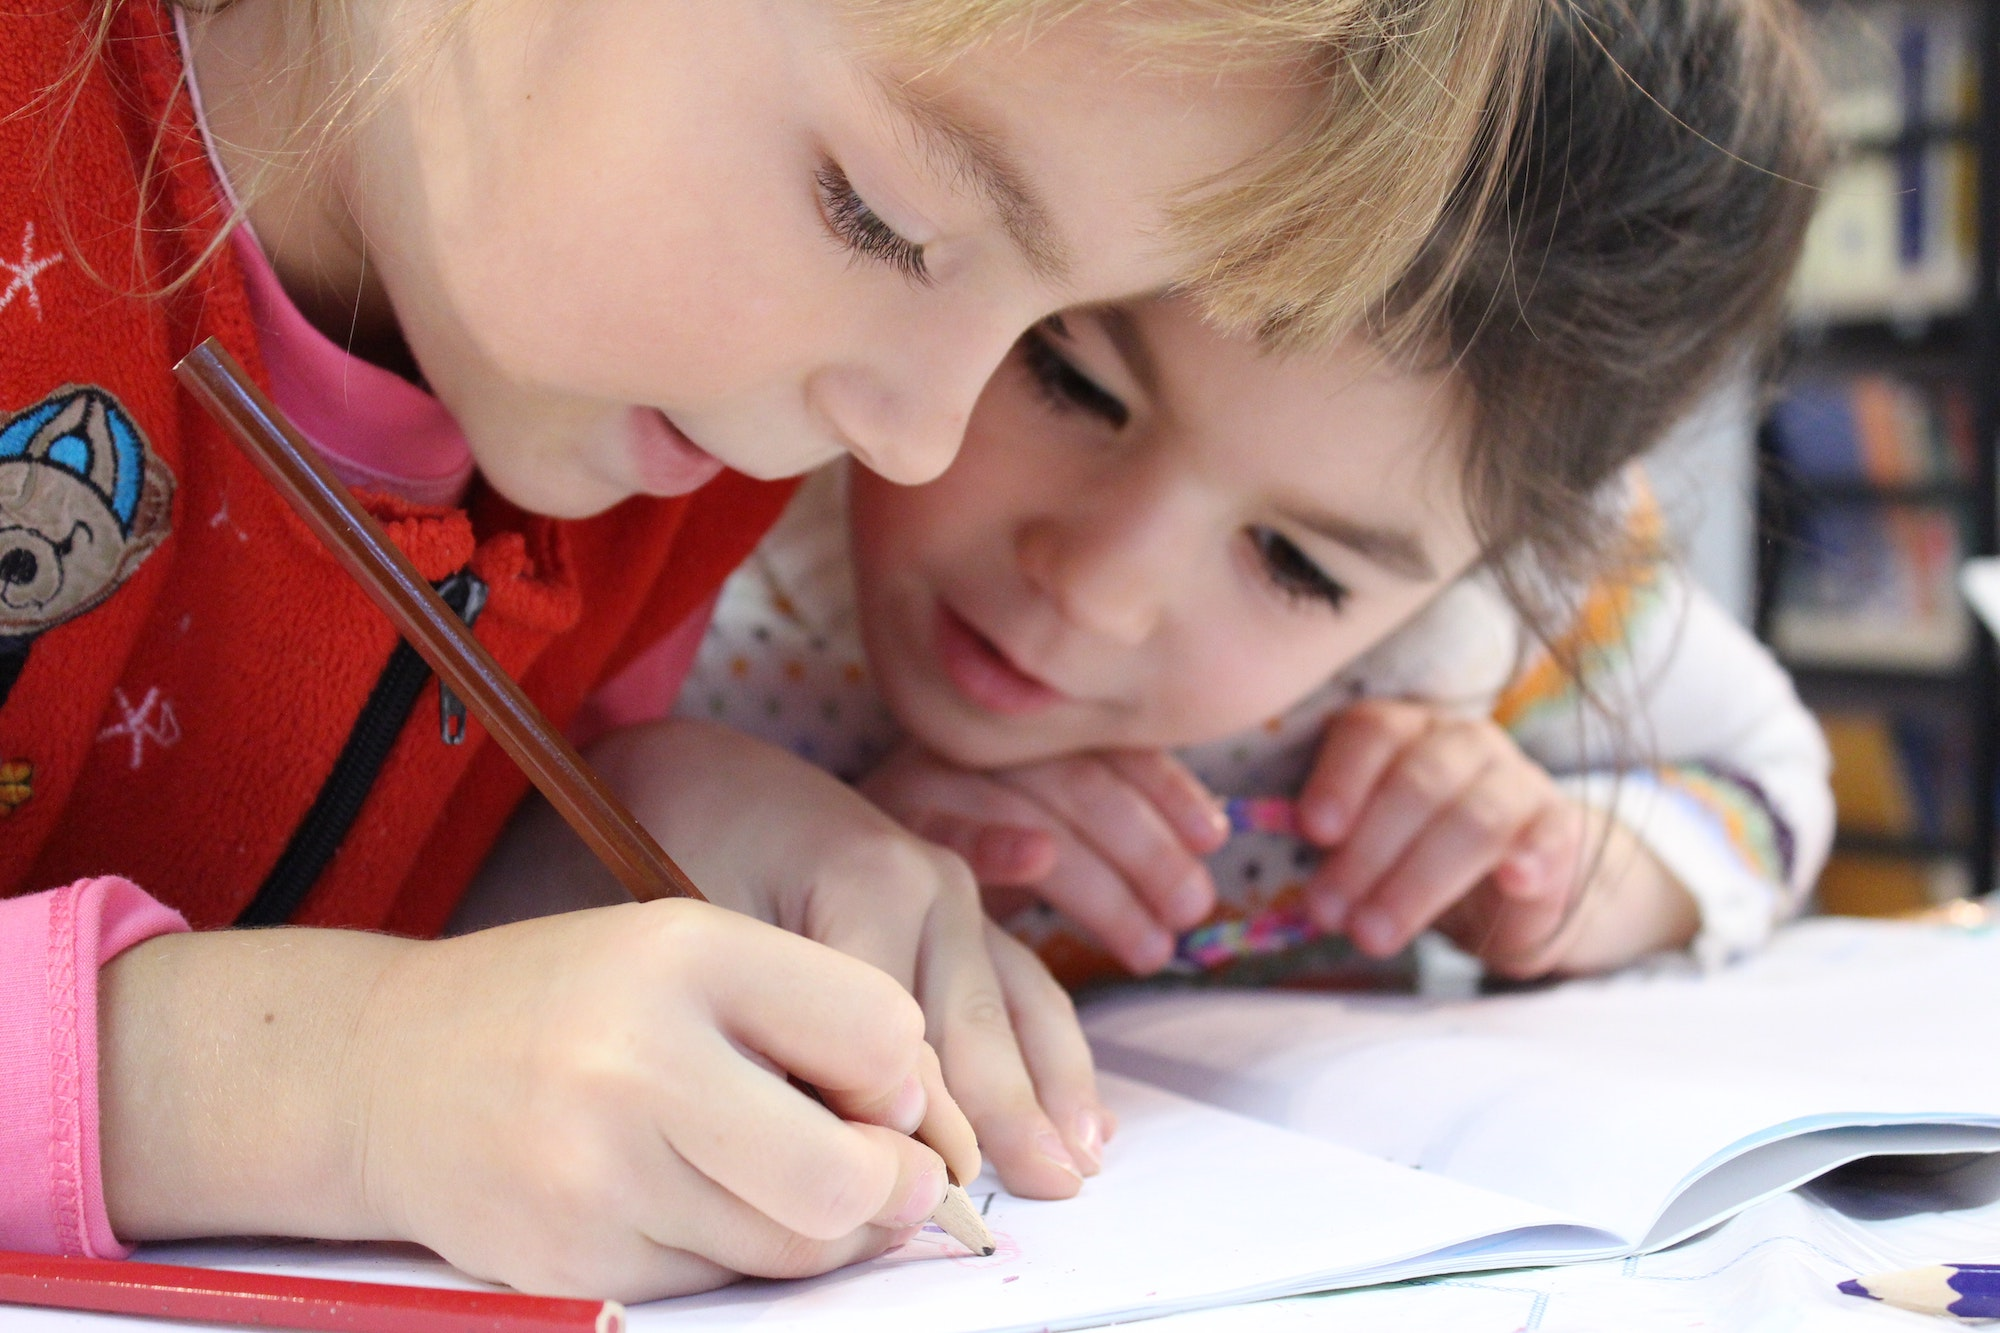 girls-writing-notebook-learning-cube academy-best-summer-camp-plano-texas